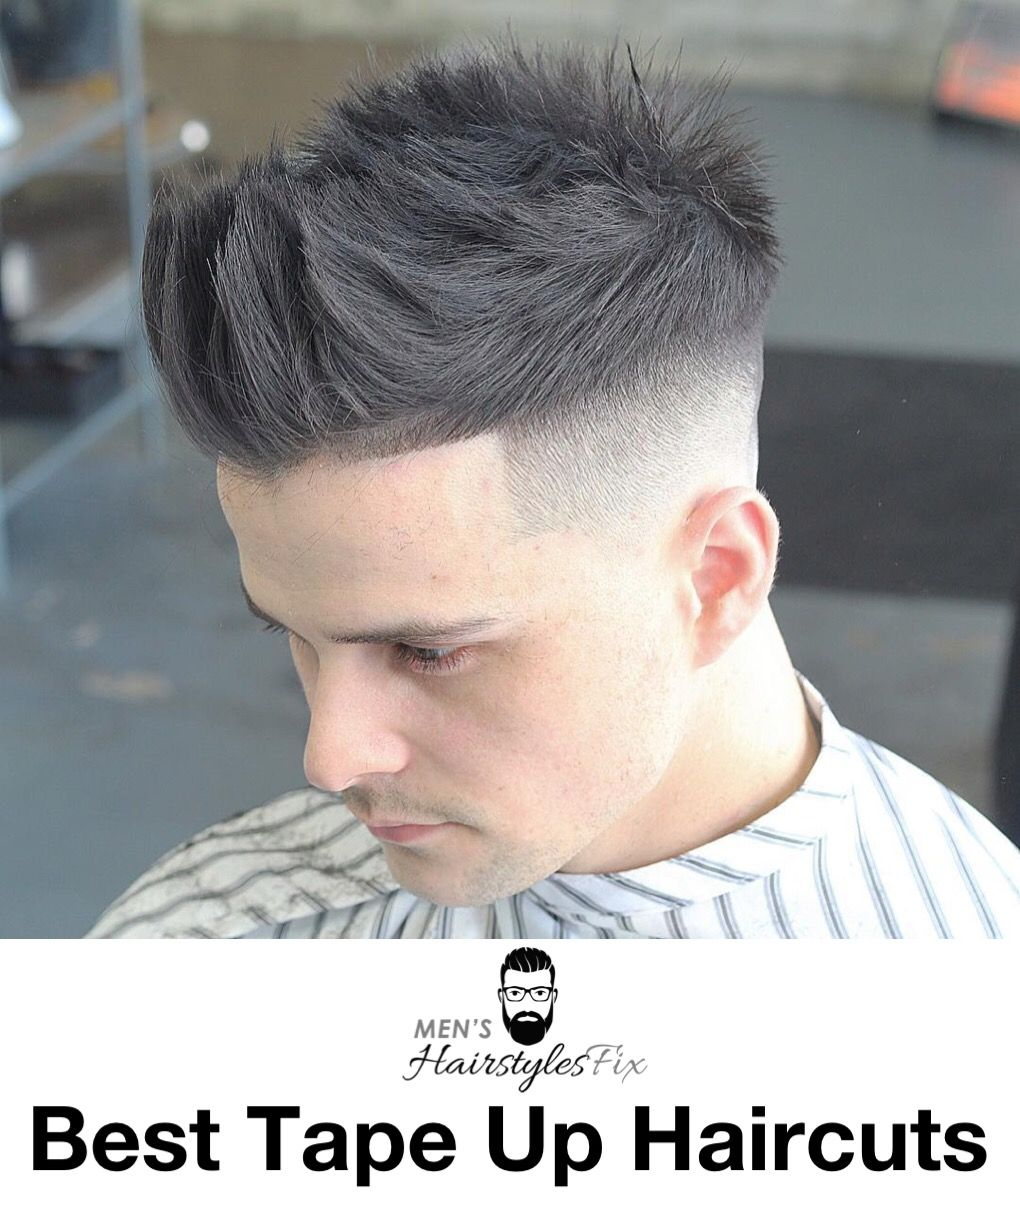 Tape up haircut for boys  best tape up haircuts in   haircuts  pinterest  hair cuts